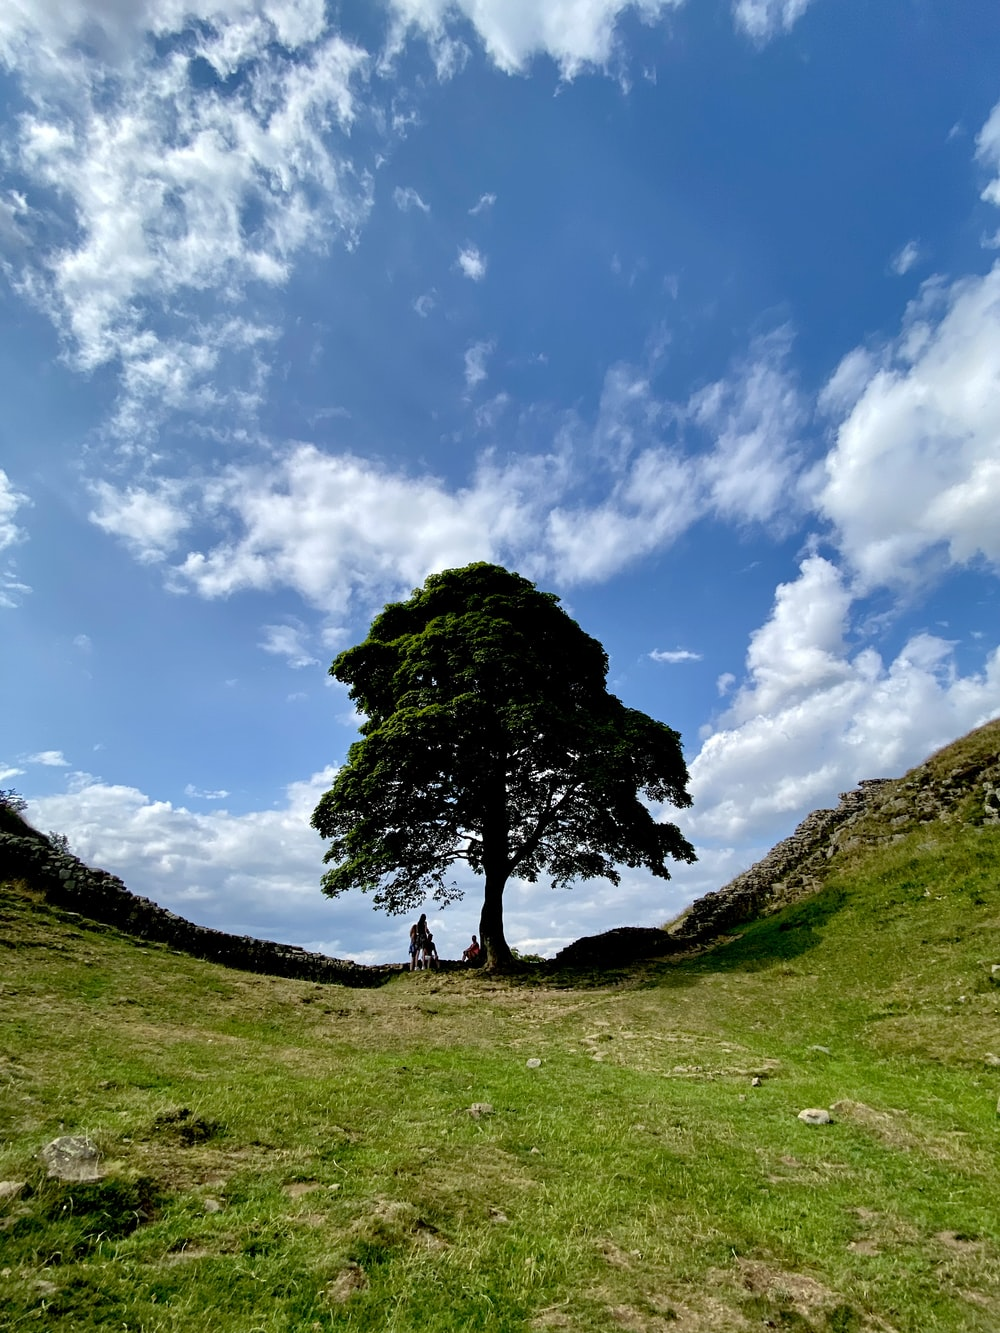 green tree on green grass field under blue sky and white clouds during daytime